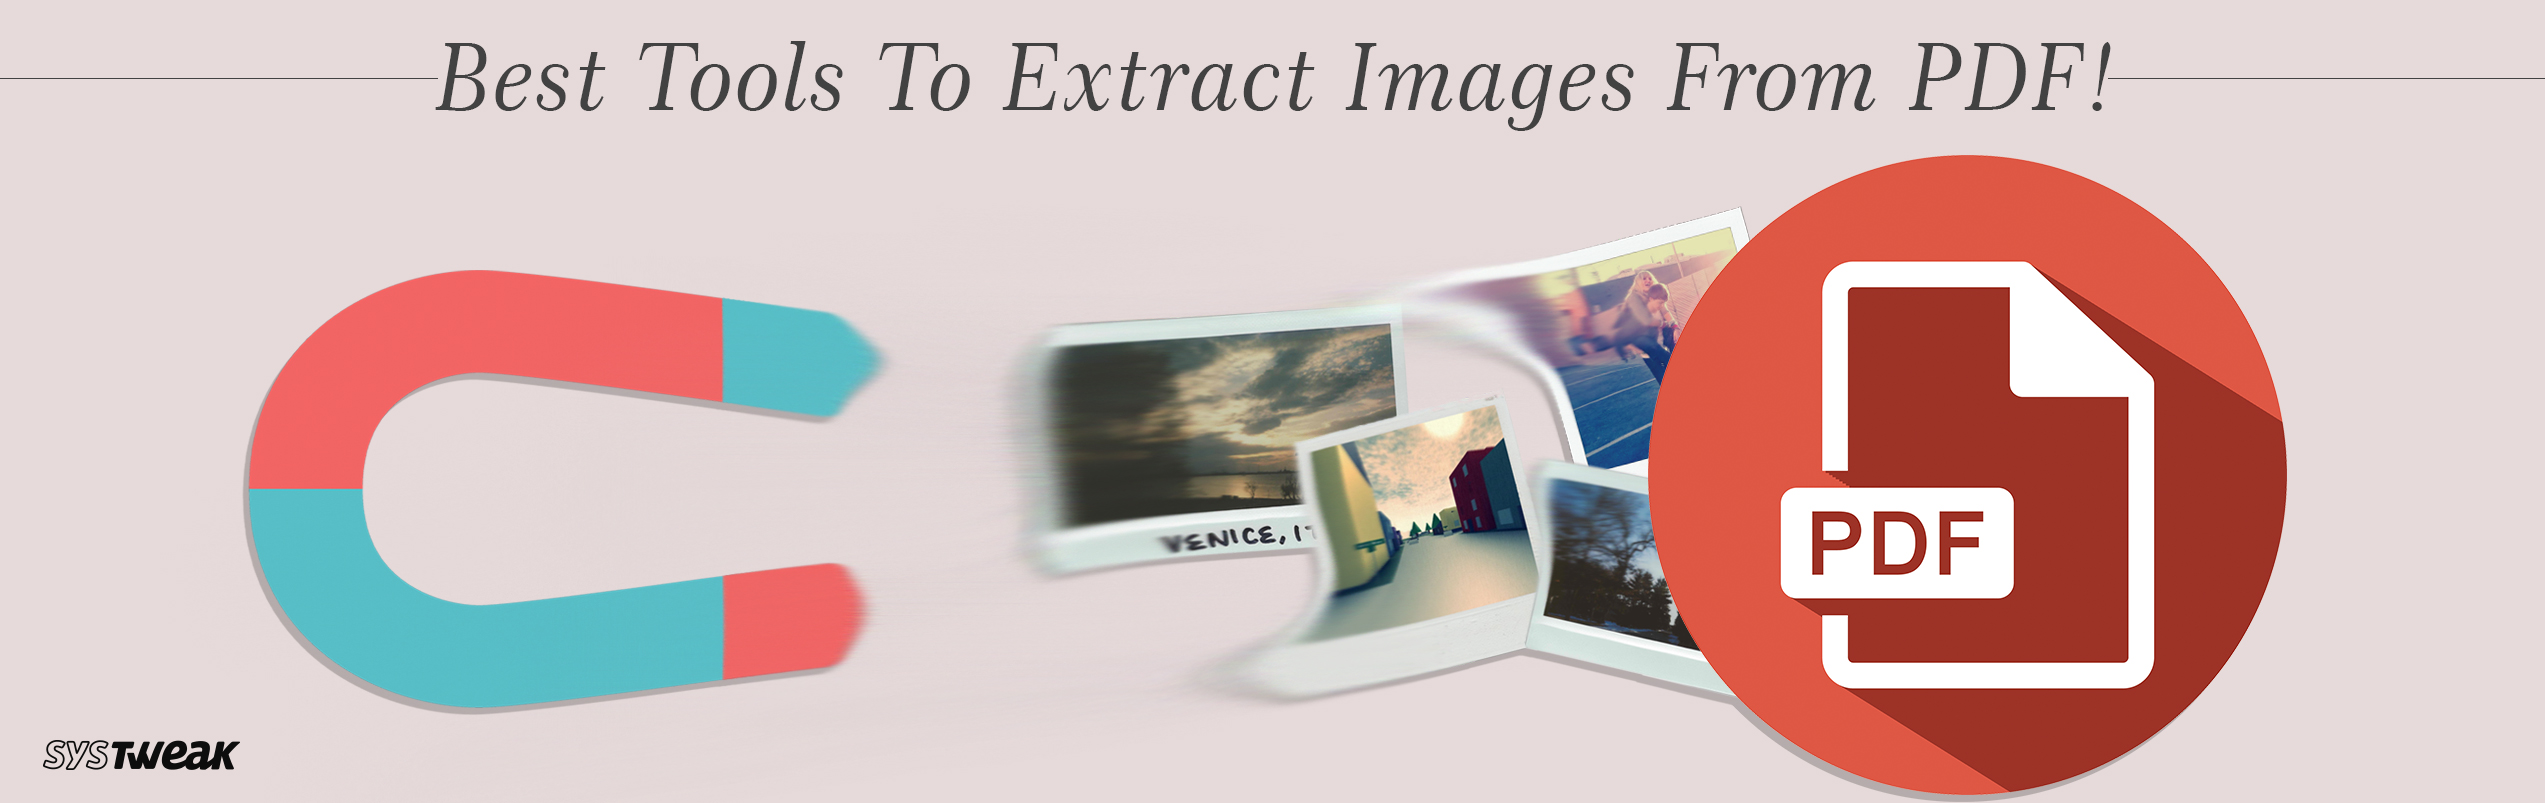 Friendly Tools to Extract Images From PDF